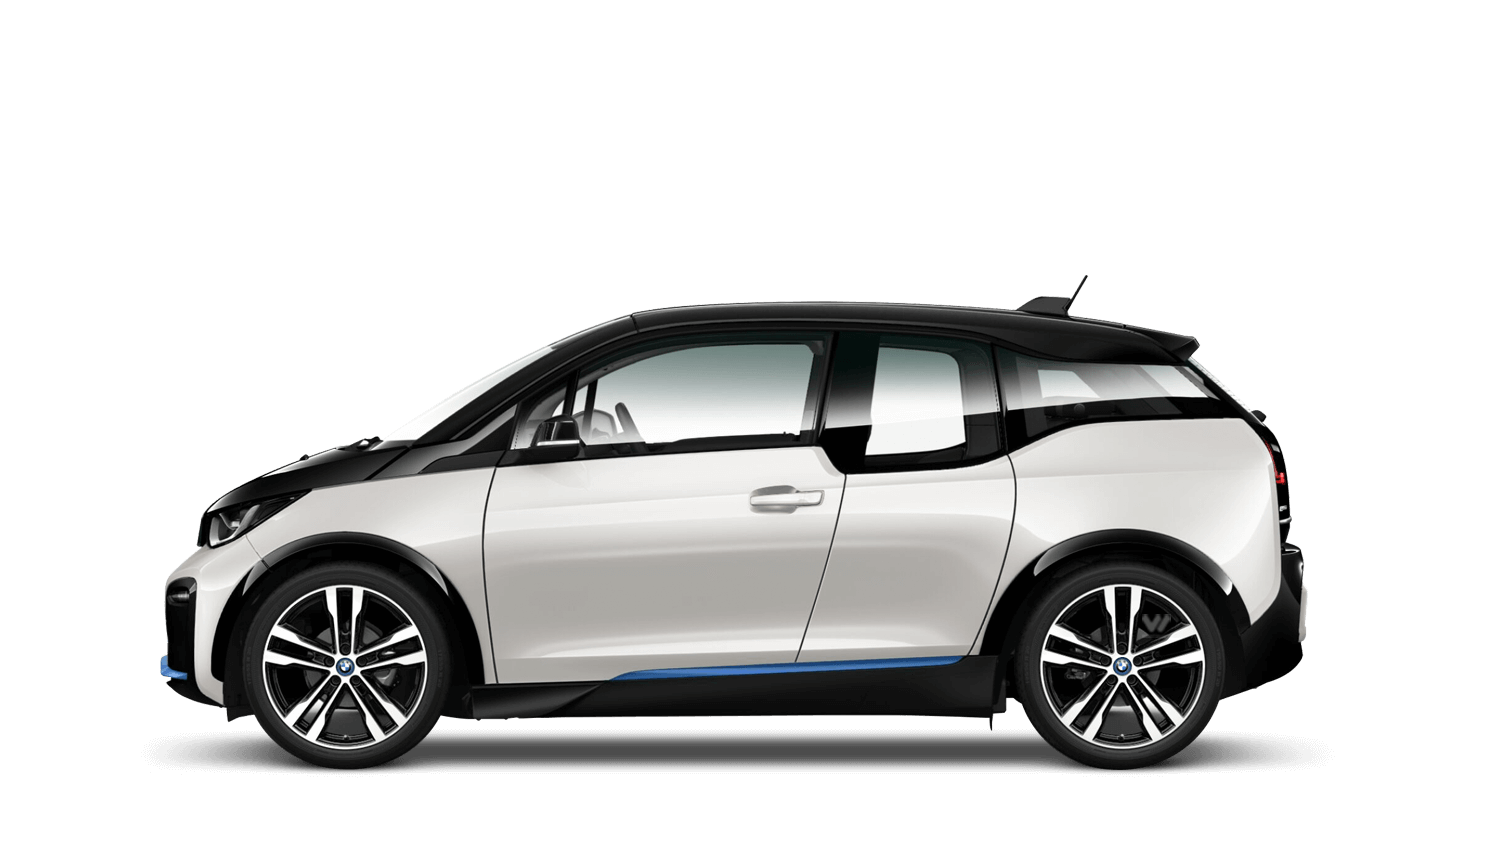 new bmw i3s for sale barons chandlers bmw. Black Bedroom Furniture Sets. Home Design Ideas